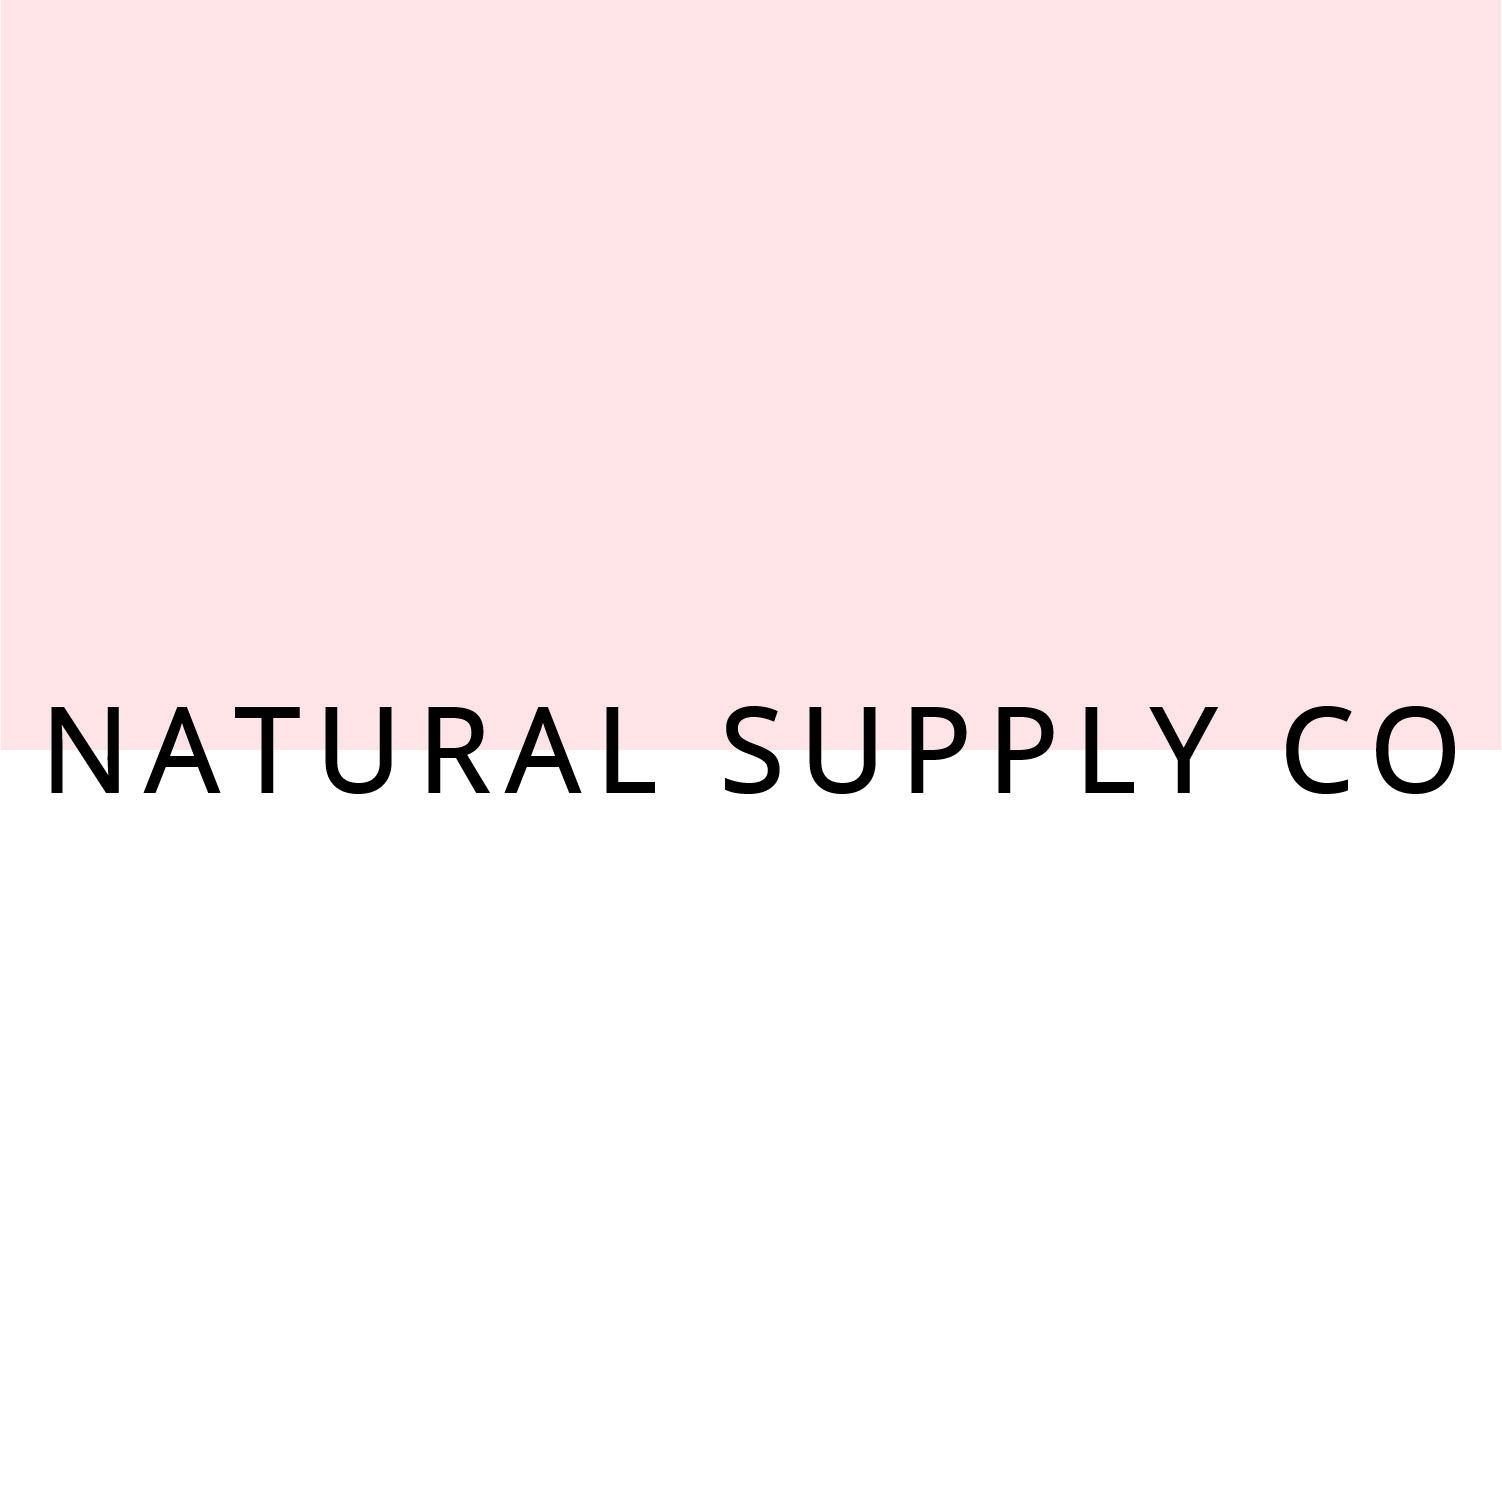 Natural Supply Co